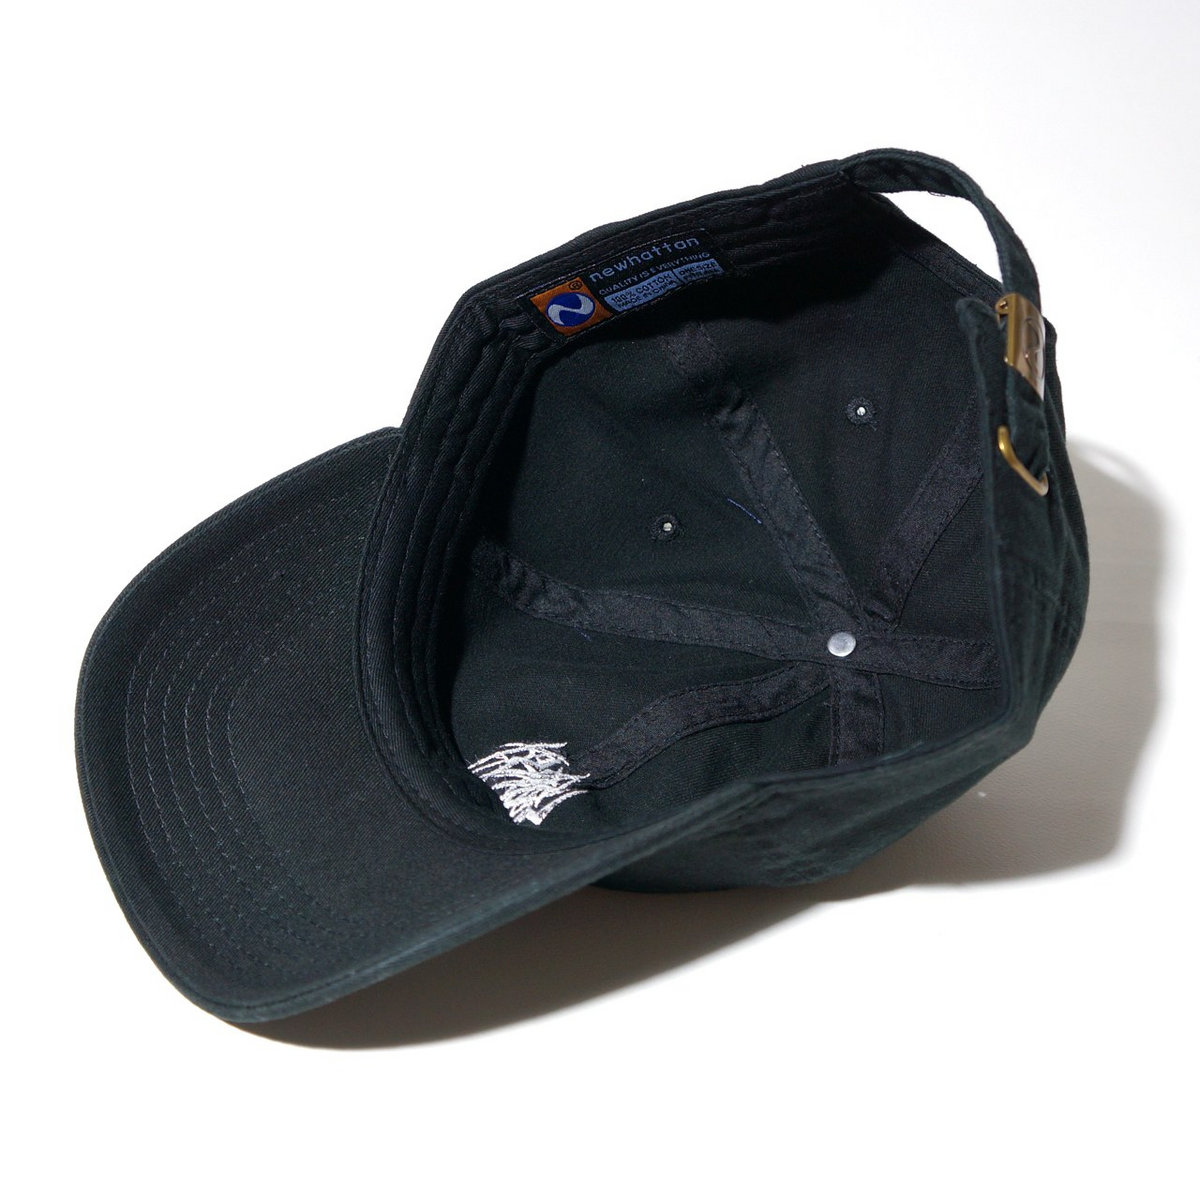 46c0ddccbf8 ... SETE STAR SEPT Cotton Cap (Newhattan 1404)-Black photo